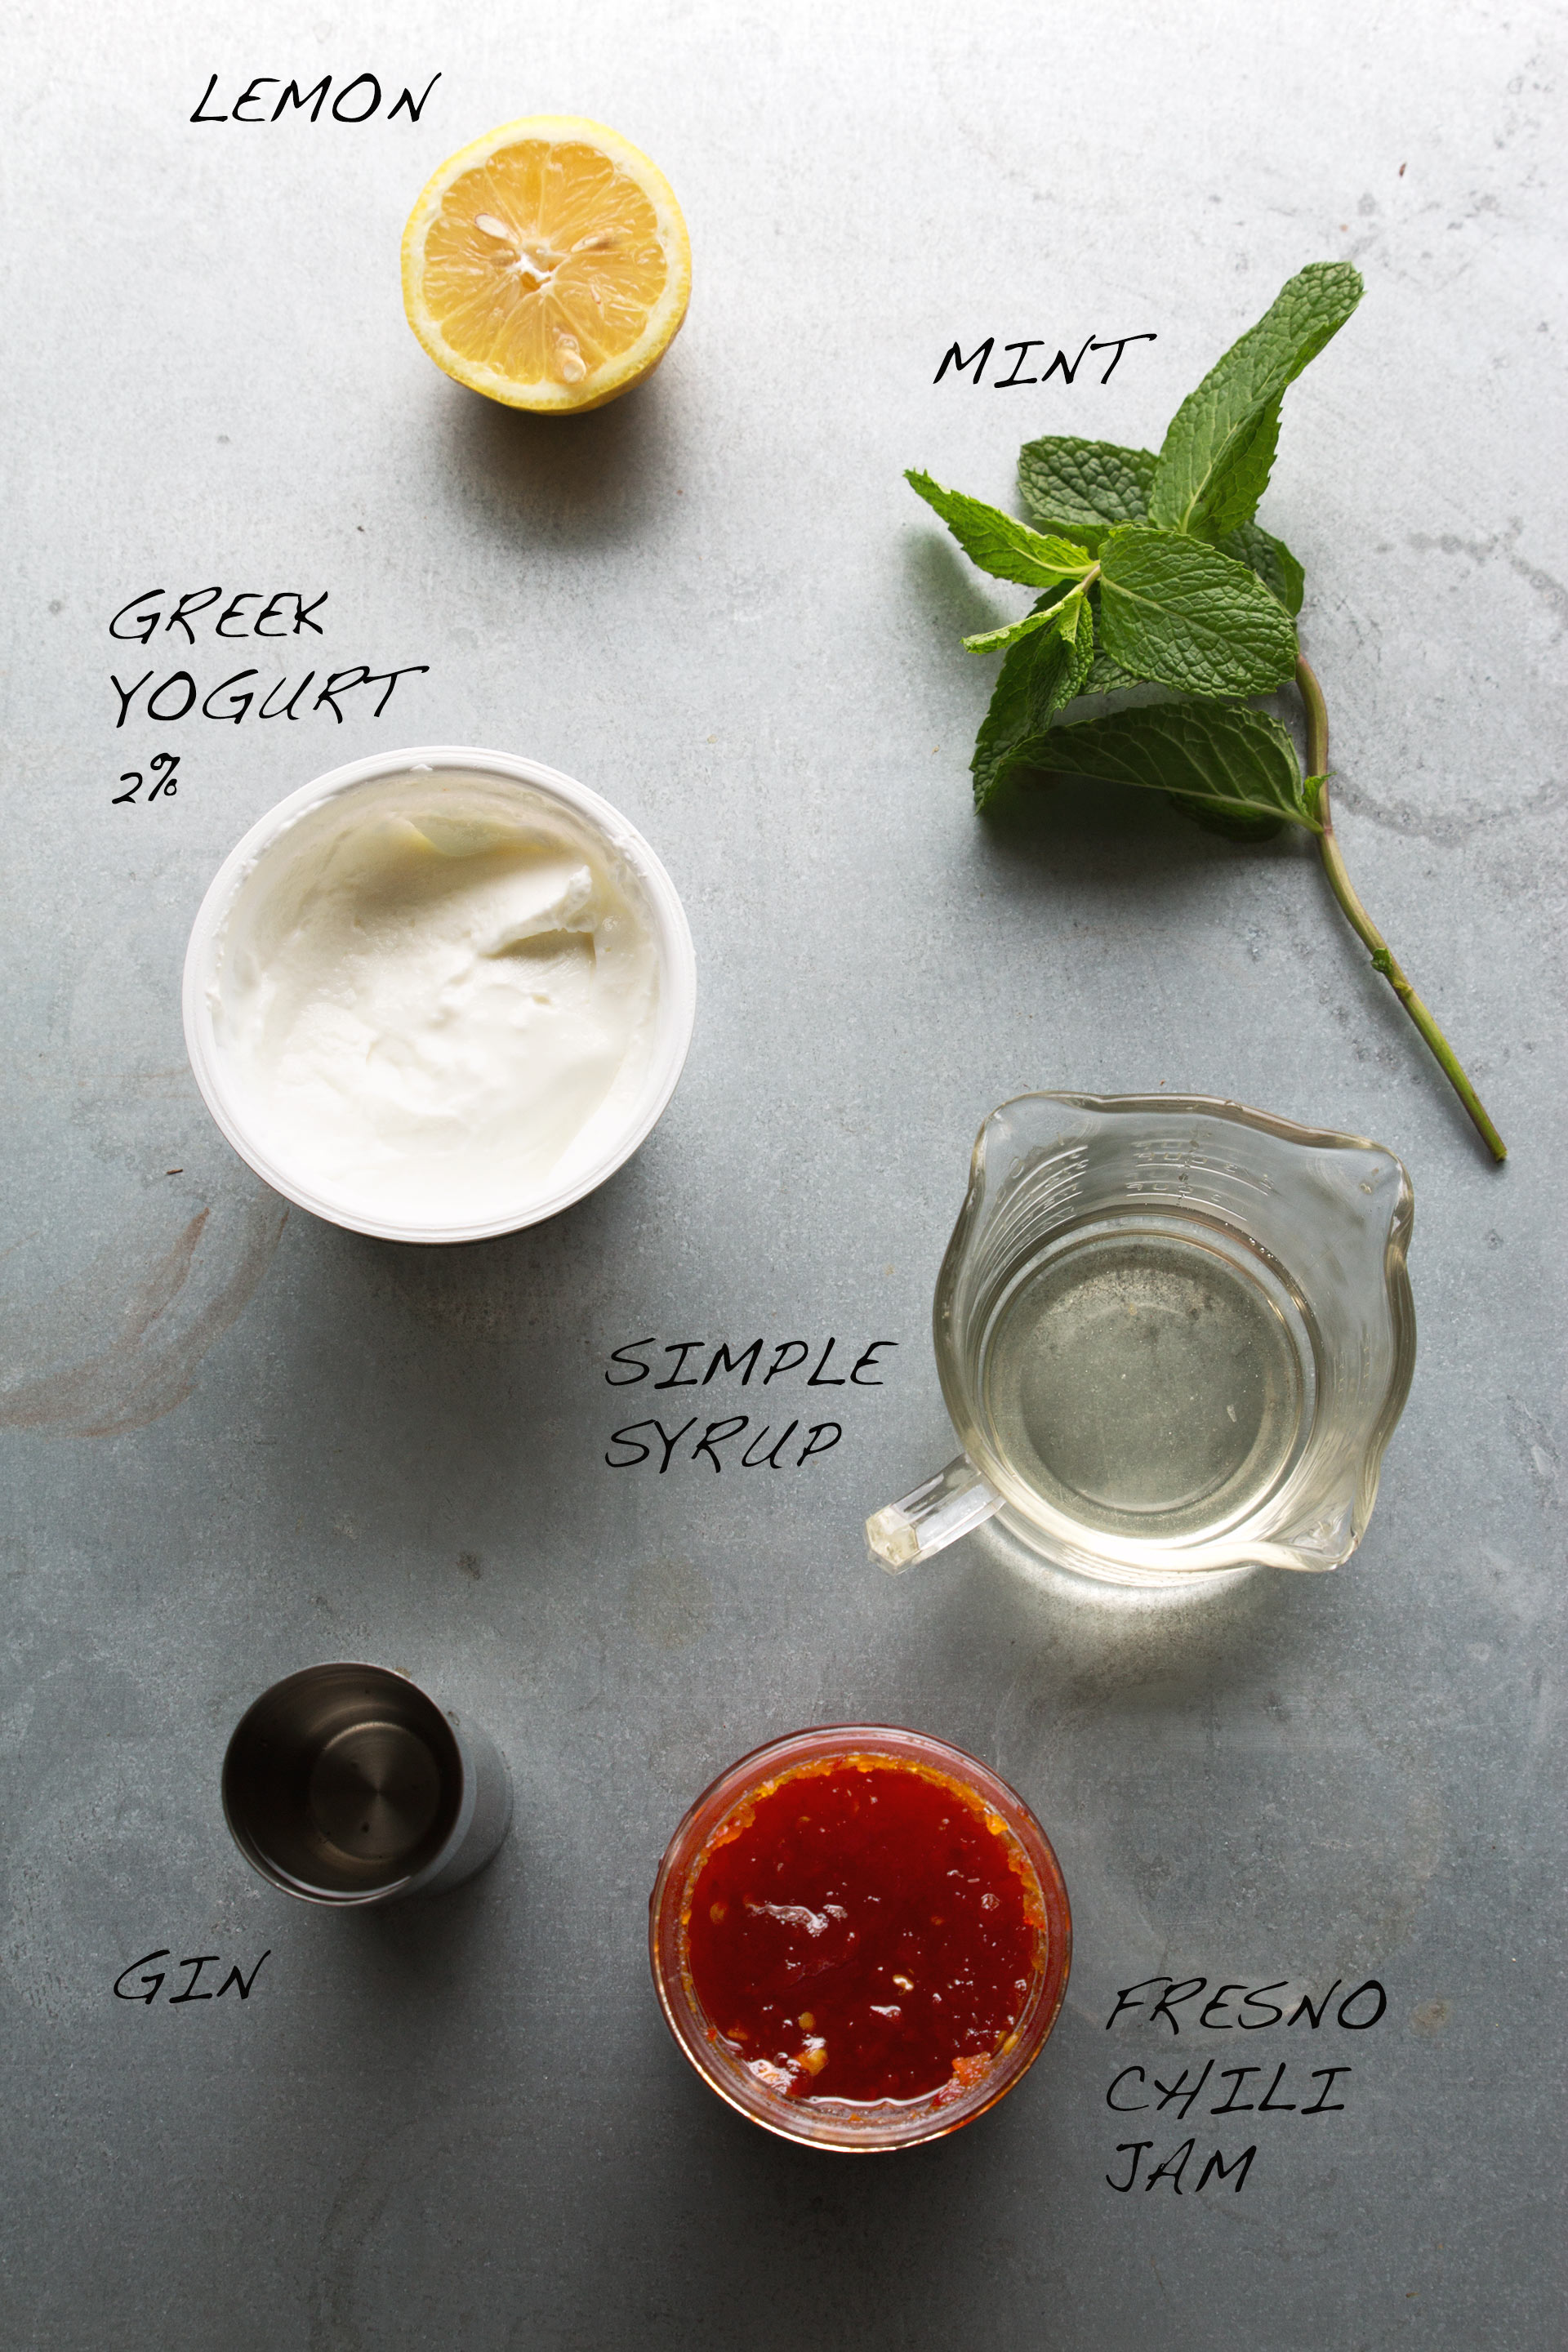 Gin, Jam & Yogurt Cocktail Ingredients | HonestlyYUM